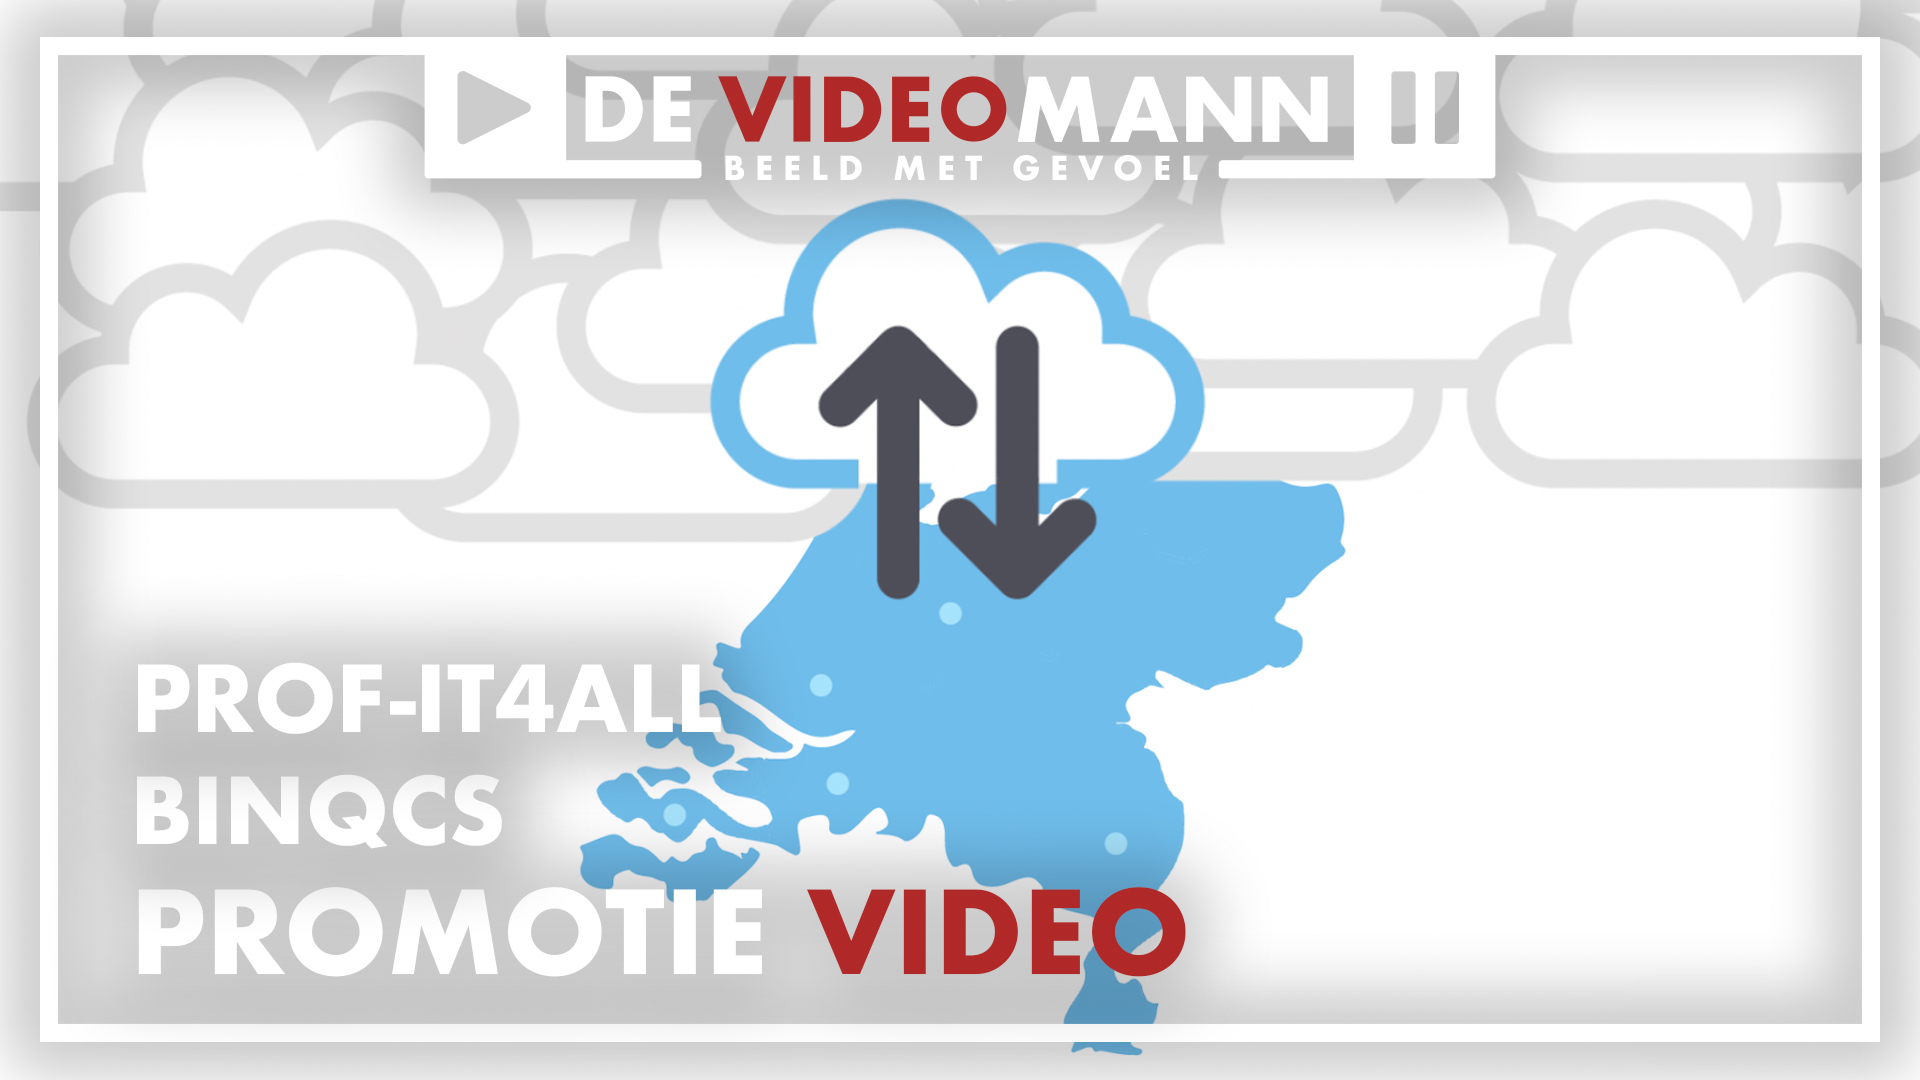 Prof-IT4all – Binqcs – Promotie Video